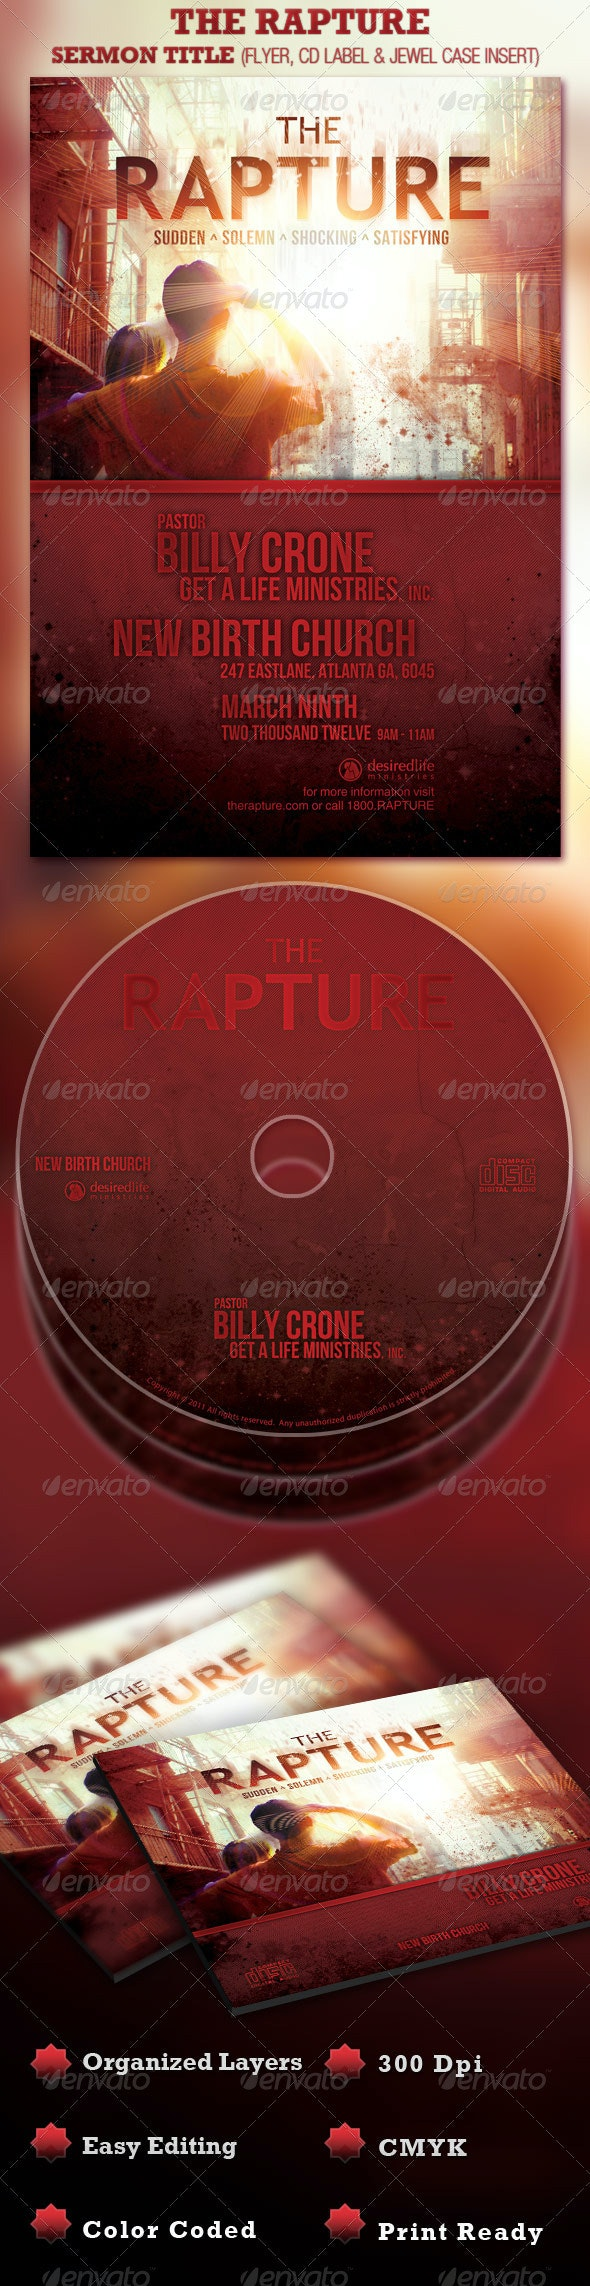 The Rapture Church Flyer and CD Template - Church Flyers